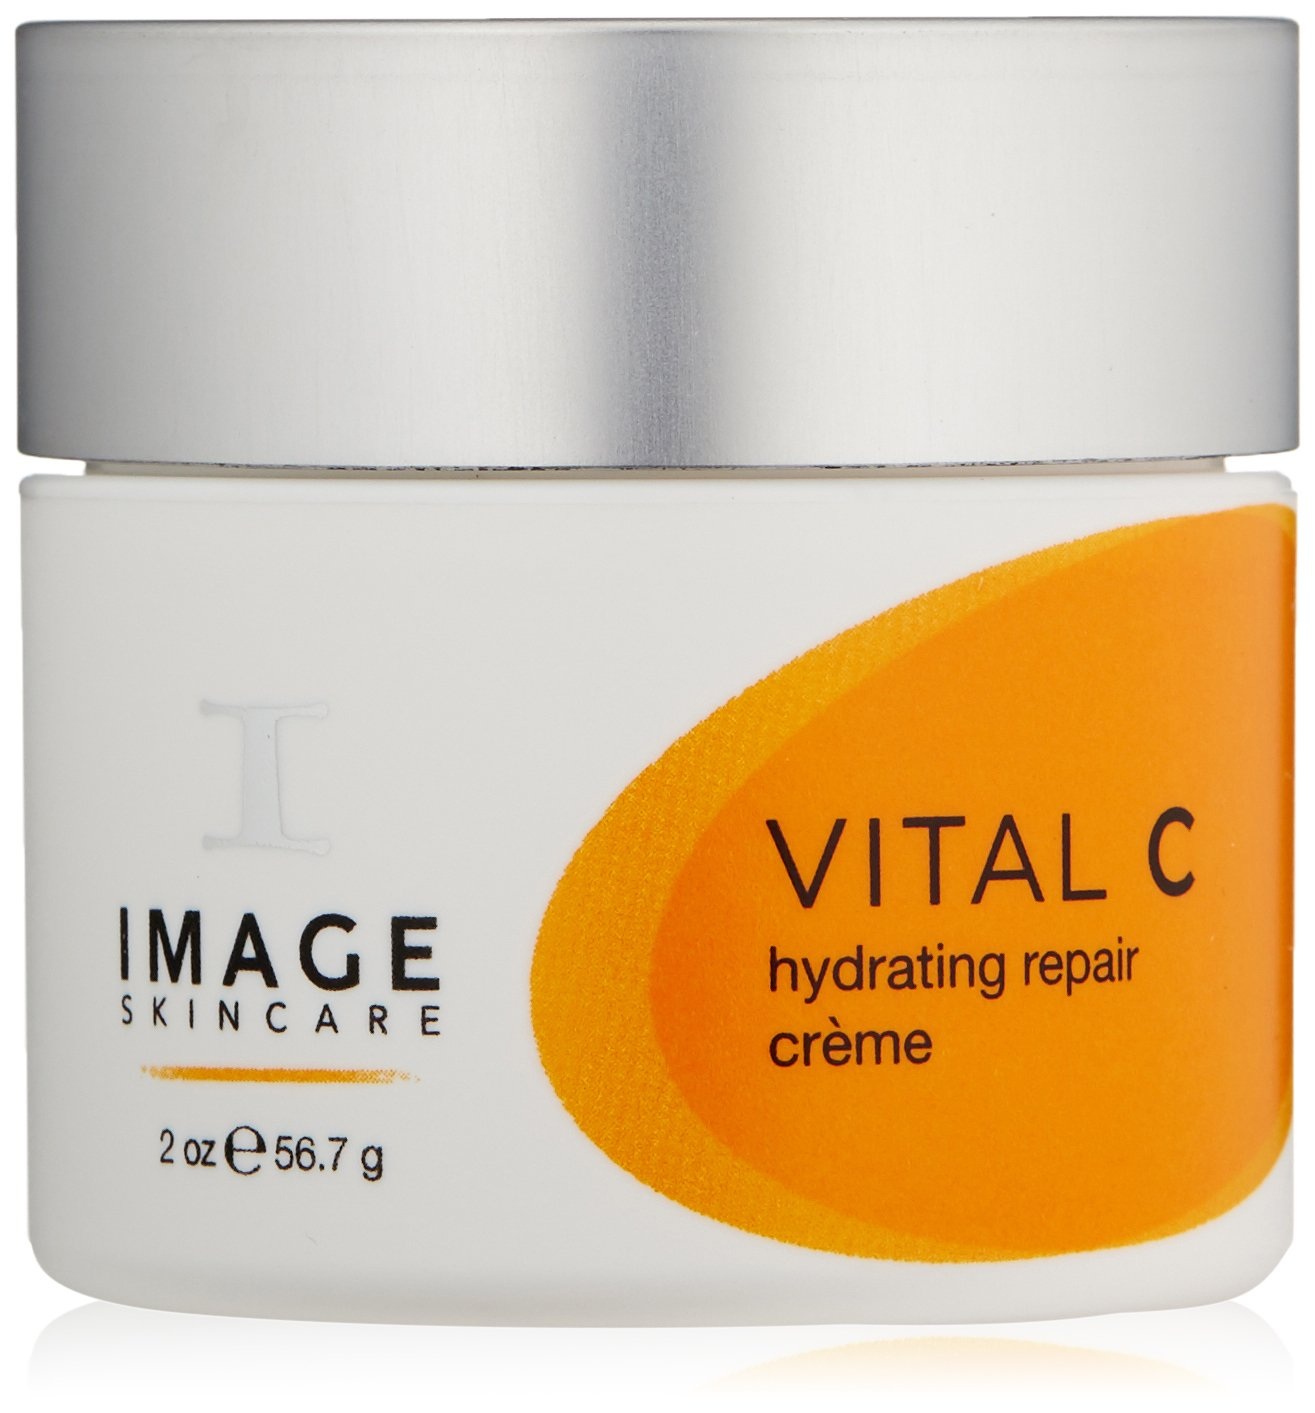 Image Skincare Vital C Hydrating Repair Creme, 2 Ounce by IMAGE Skincare